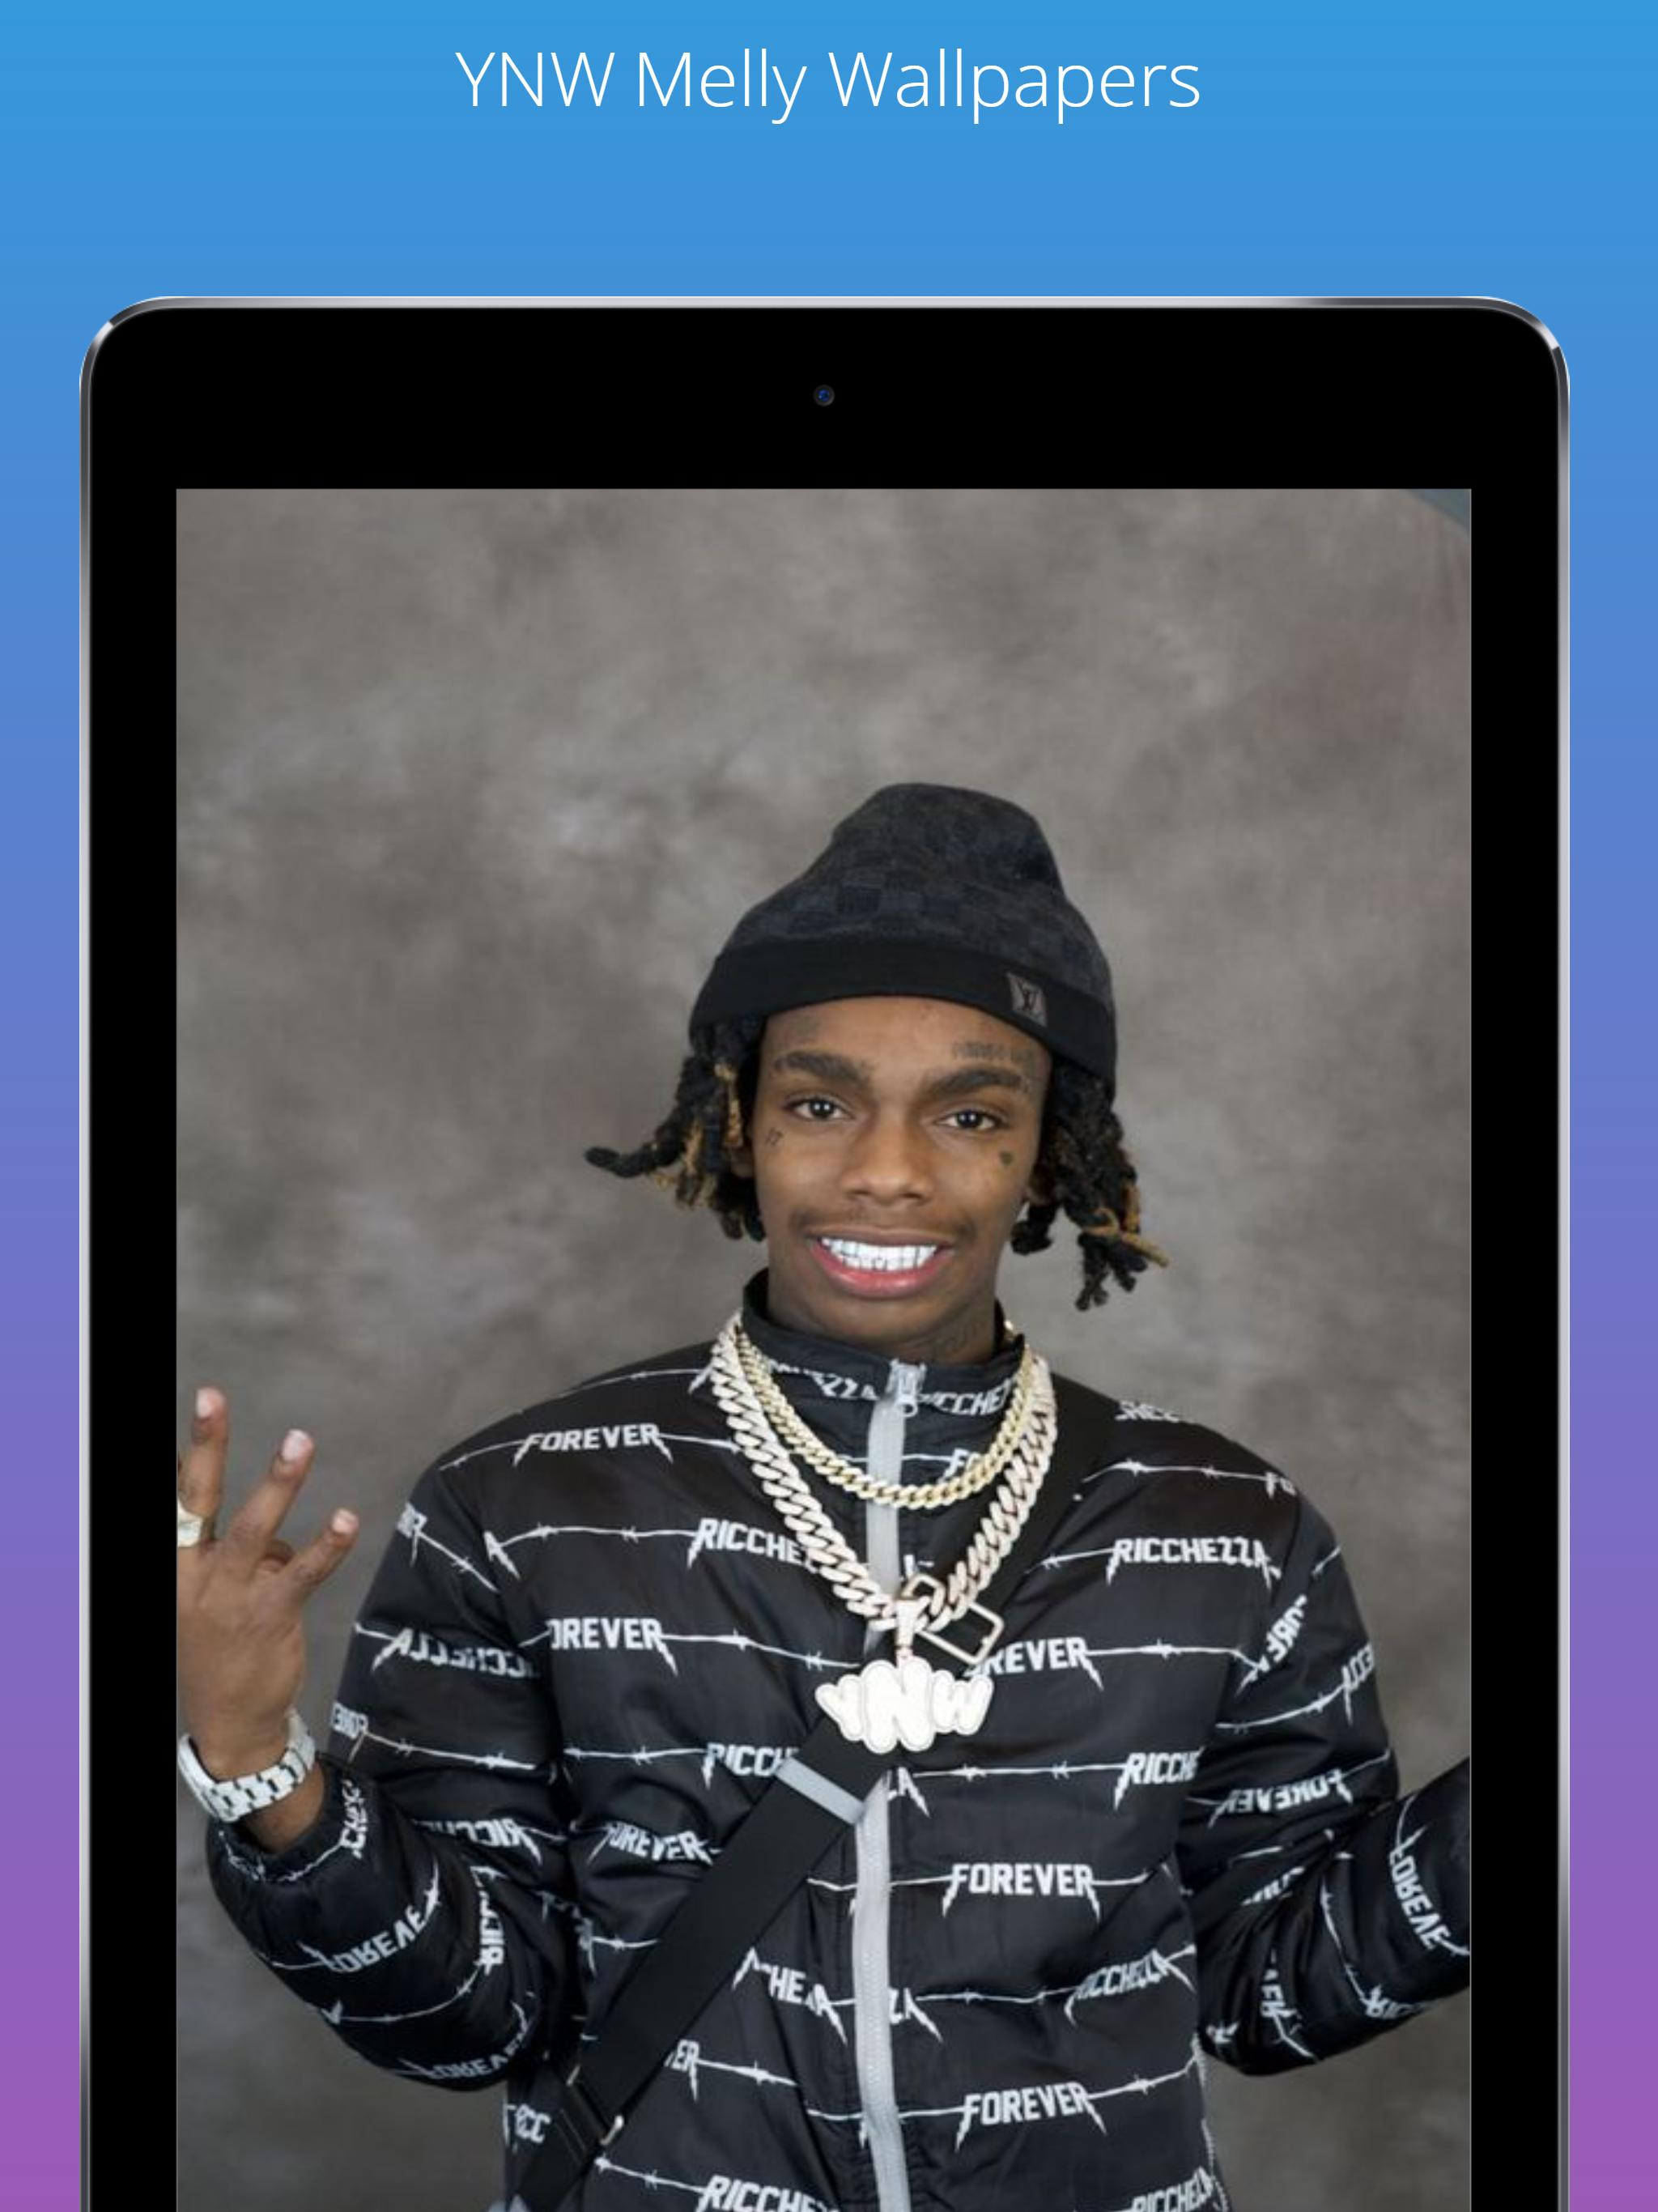 Ynw Melly Wallpapers 2021 For Android Apk Download